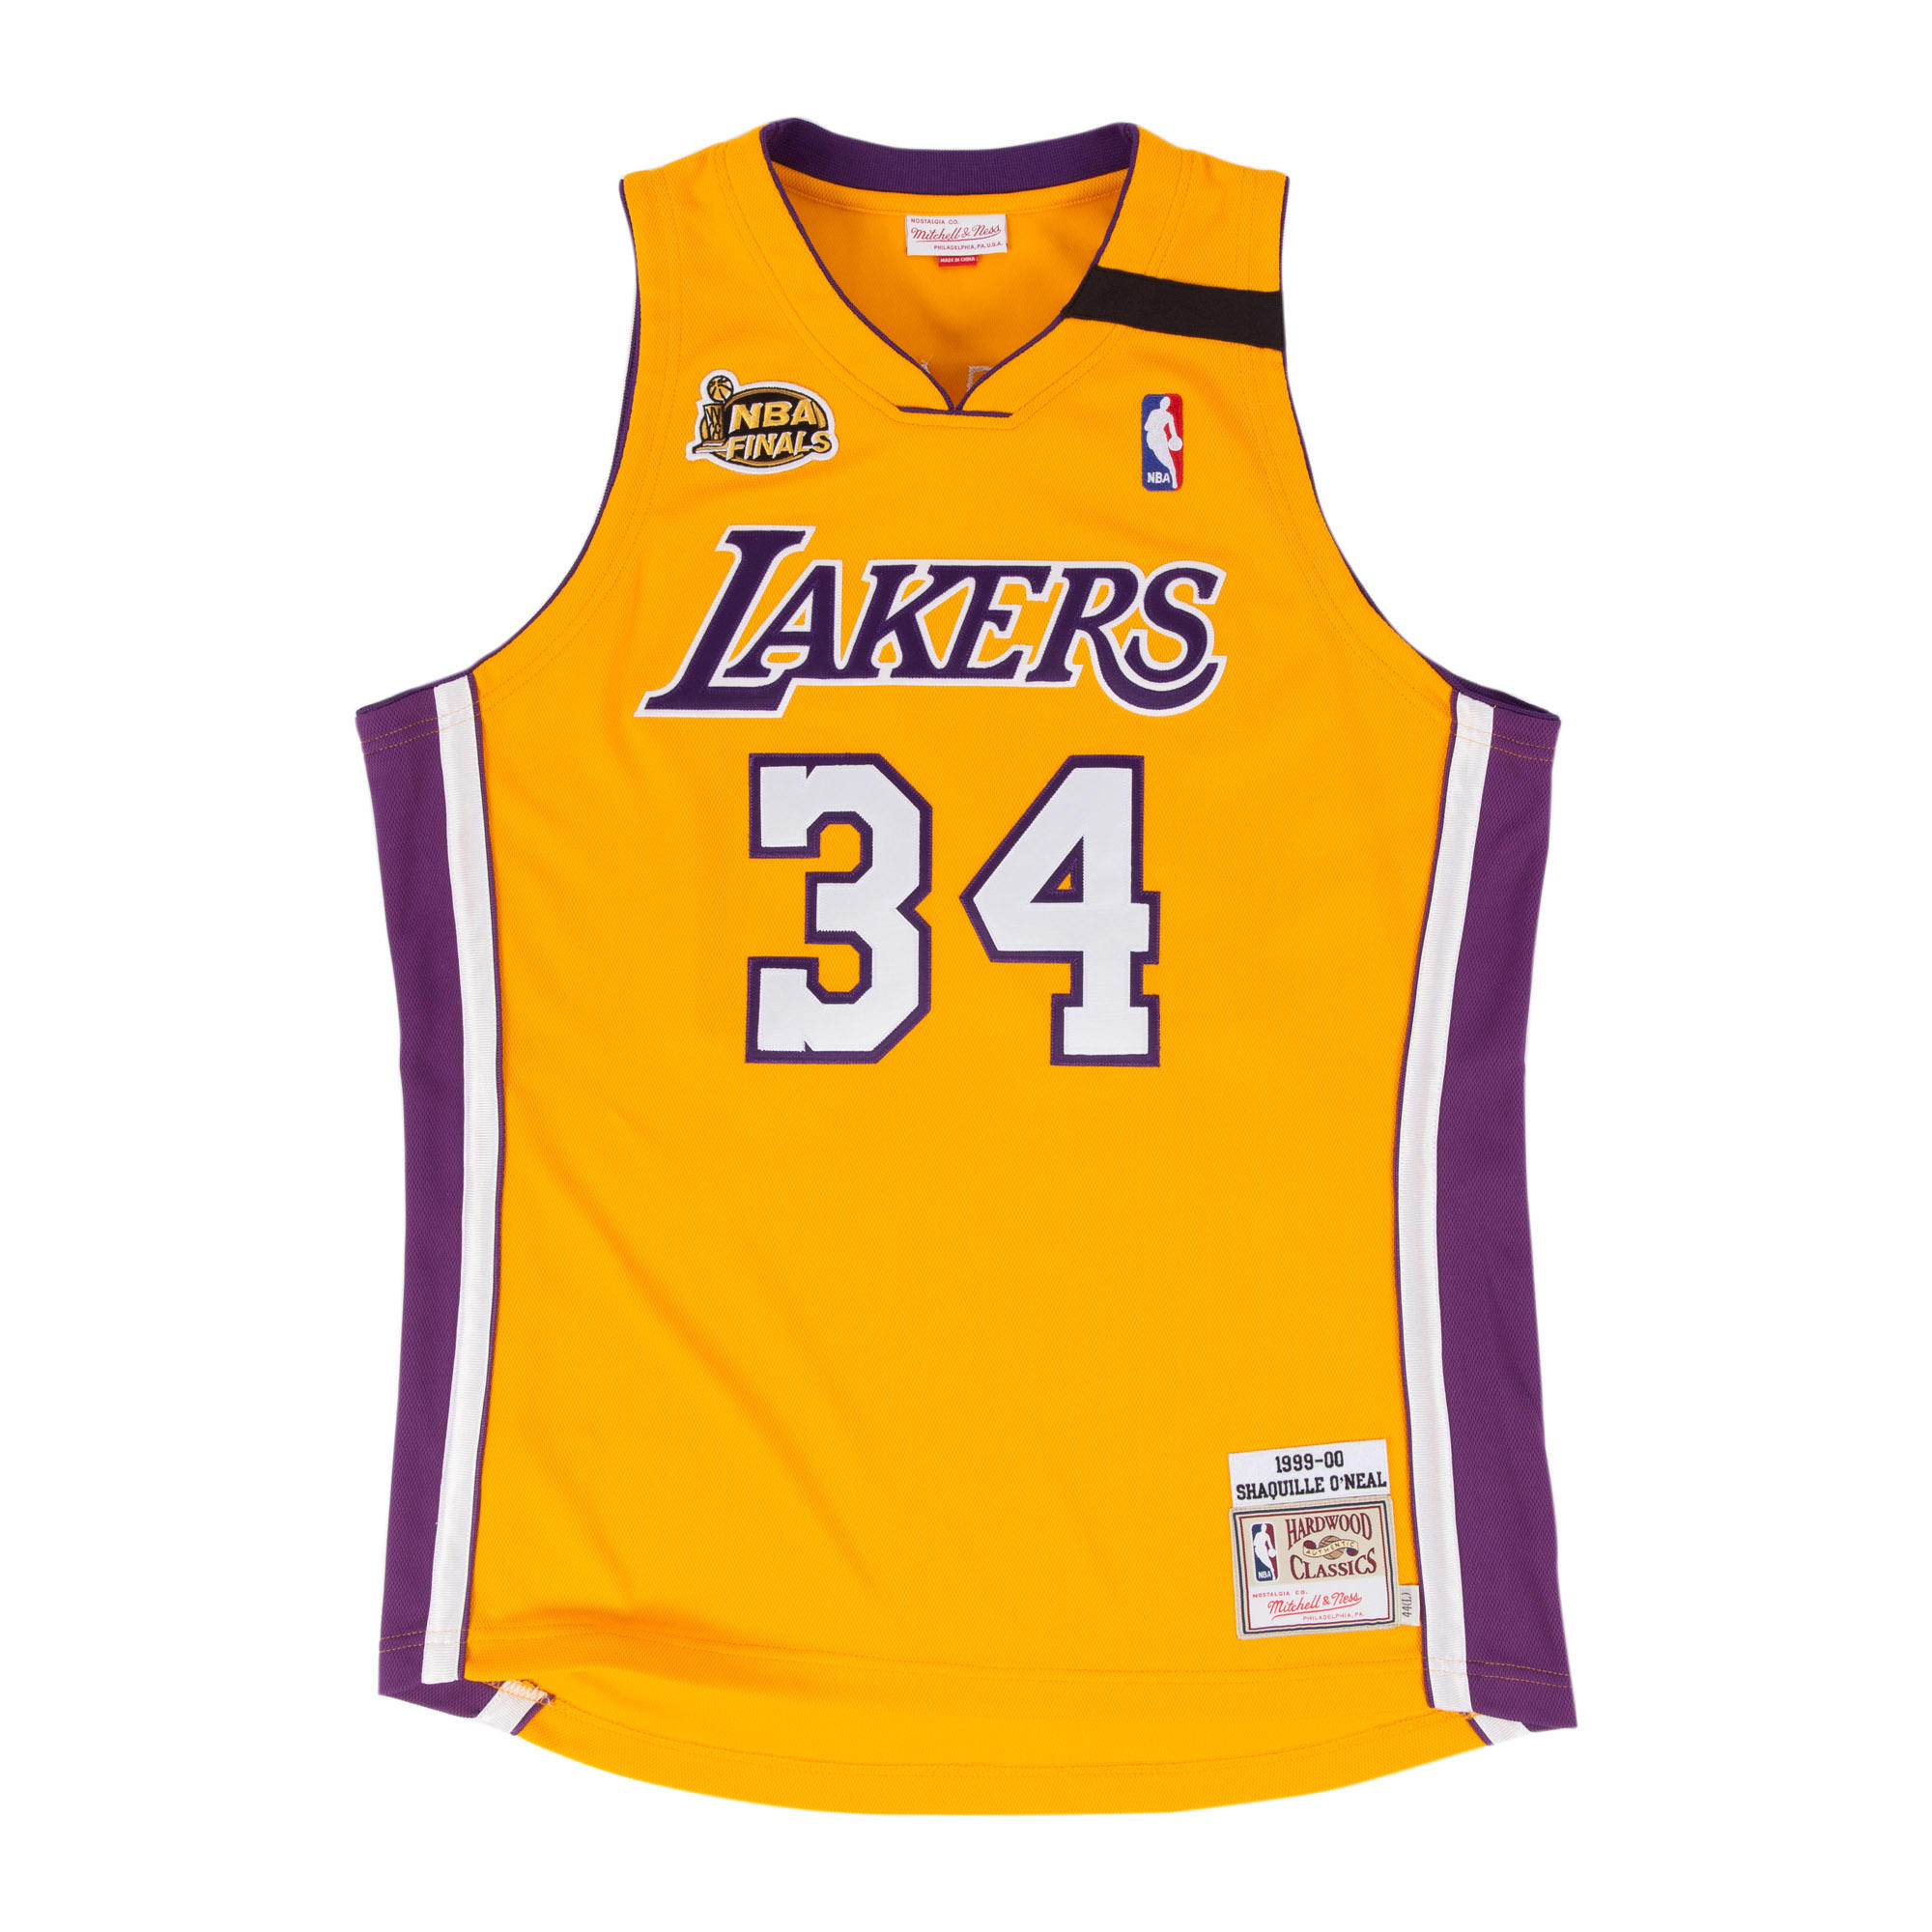 02f9f586d76 Shaquille O Neal 1999-00 Authentic Jersey LA Lakers